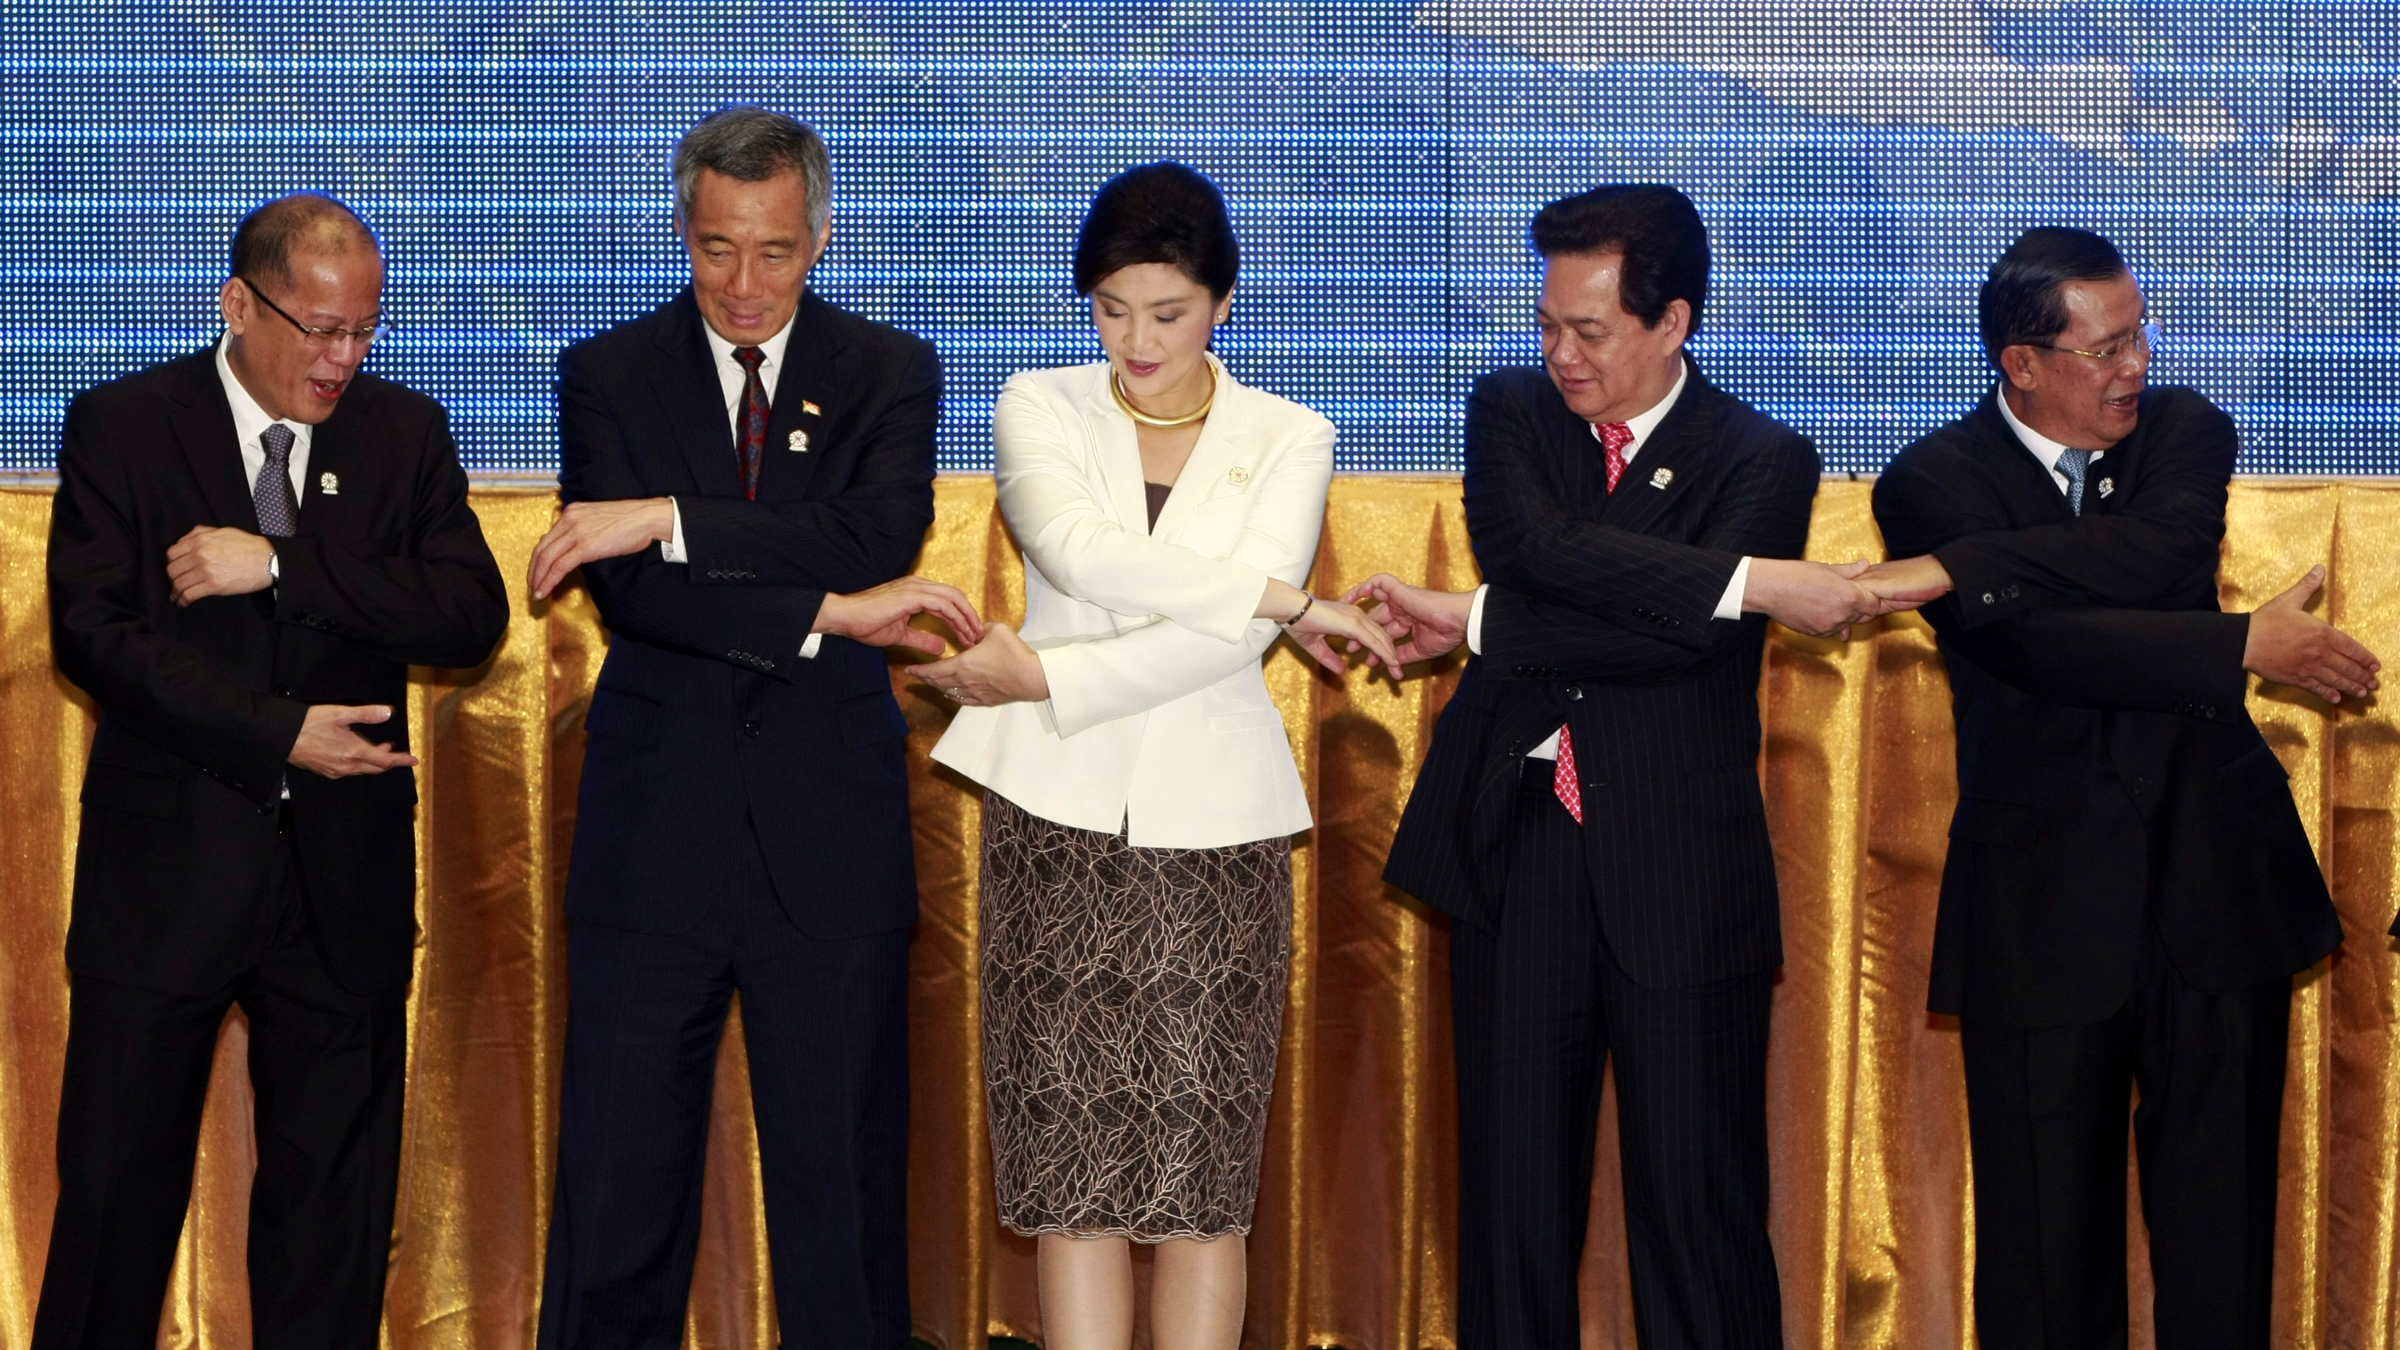 FILE - In this April 3, 2012 file photo, leaders from the Association of Southeast Asian Nations (ASEAN) from left, Philippines' President Benigno Aquino III, Singapore Prime Minister Lee Hsien Loong, Thailand's Prime Minister Yingluck Shinawatra, Vietnam's Prime Minister Nguyen Tan Dung and Cambodia's Prime Minister Hun Sen shake hands for a group photo during the opening ceremony of the 20th ASEAN Summit in Phnom Penh, Cambodia. Although Asia leads the world in terms of the number of years women have governed as heads of state, and currently has four women leaders it is still extremely underrepresented in top leadership positions, the Asia Society said in a report issued Thursday, April 18, 2012. (AP Photo/Apichart Weerawong, File)